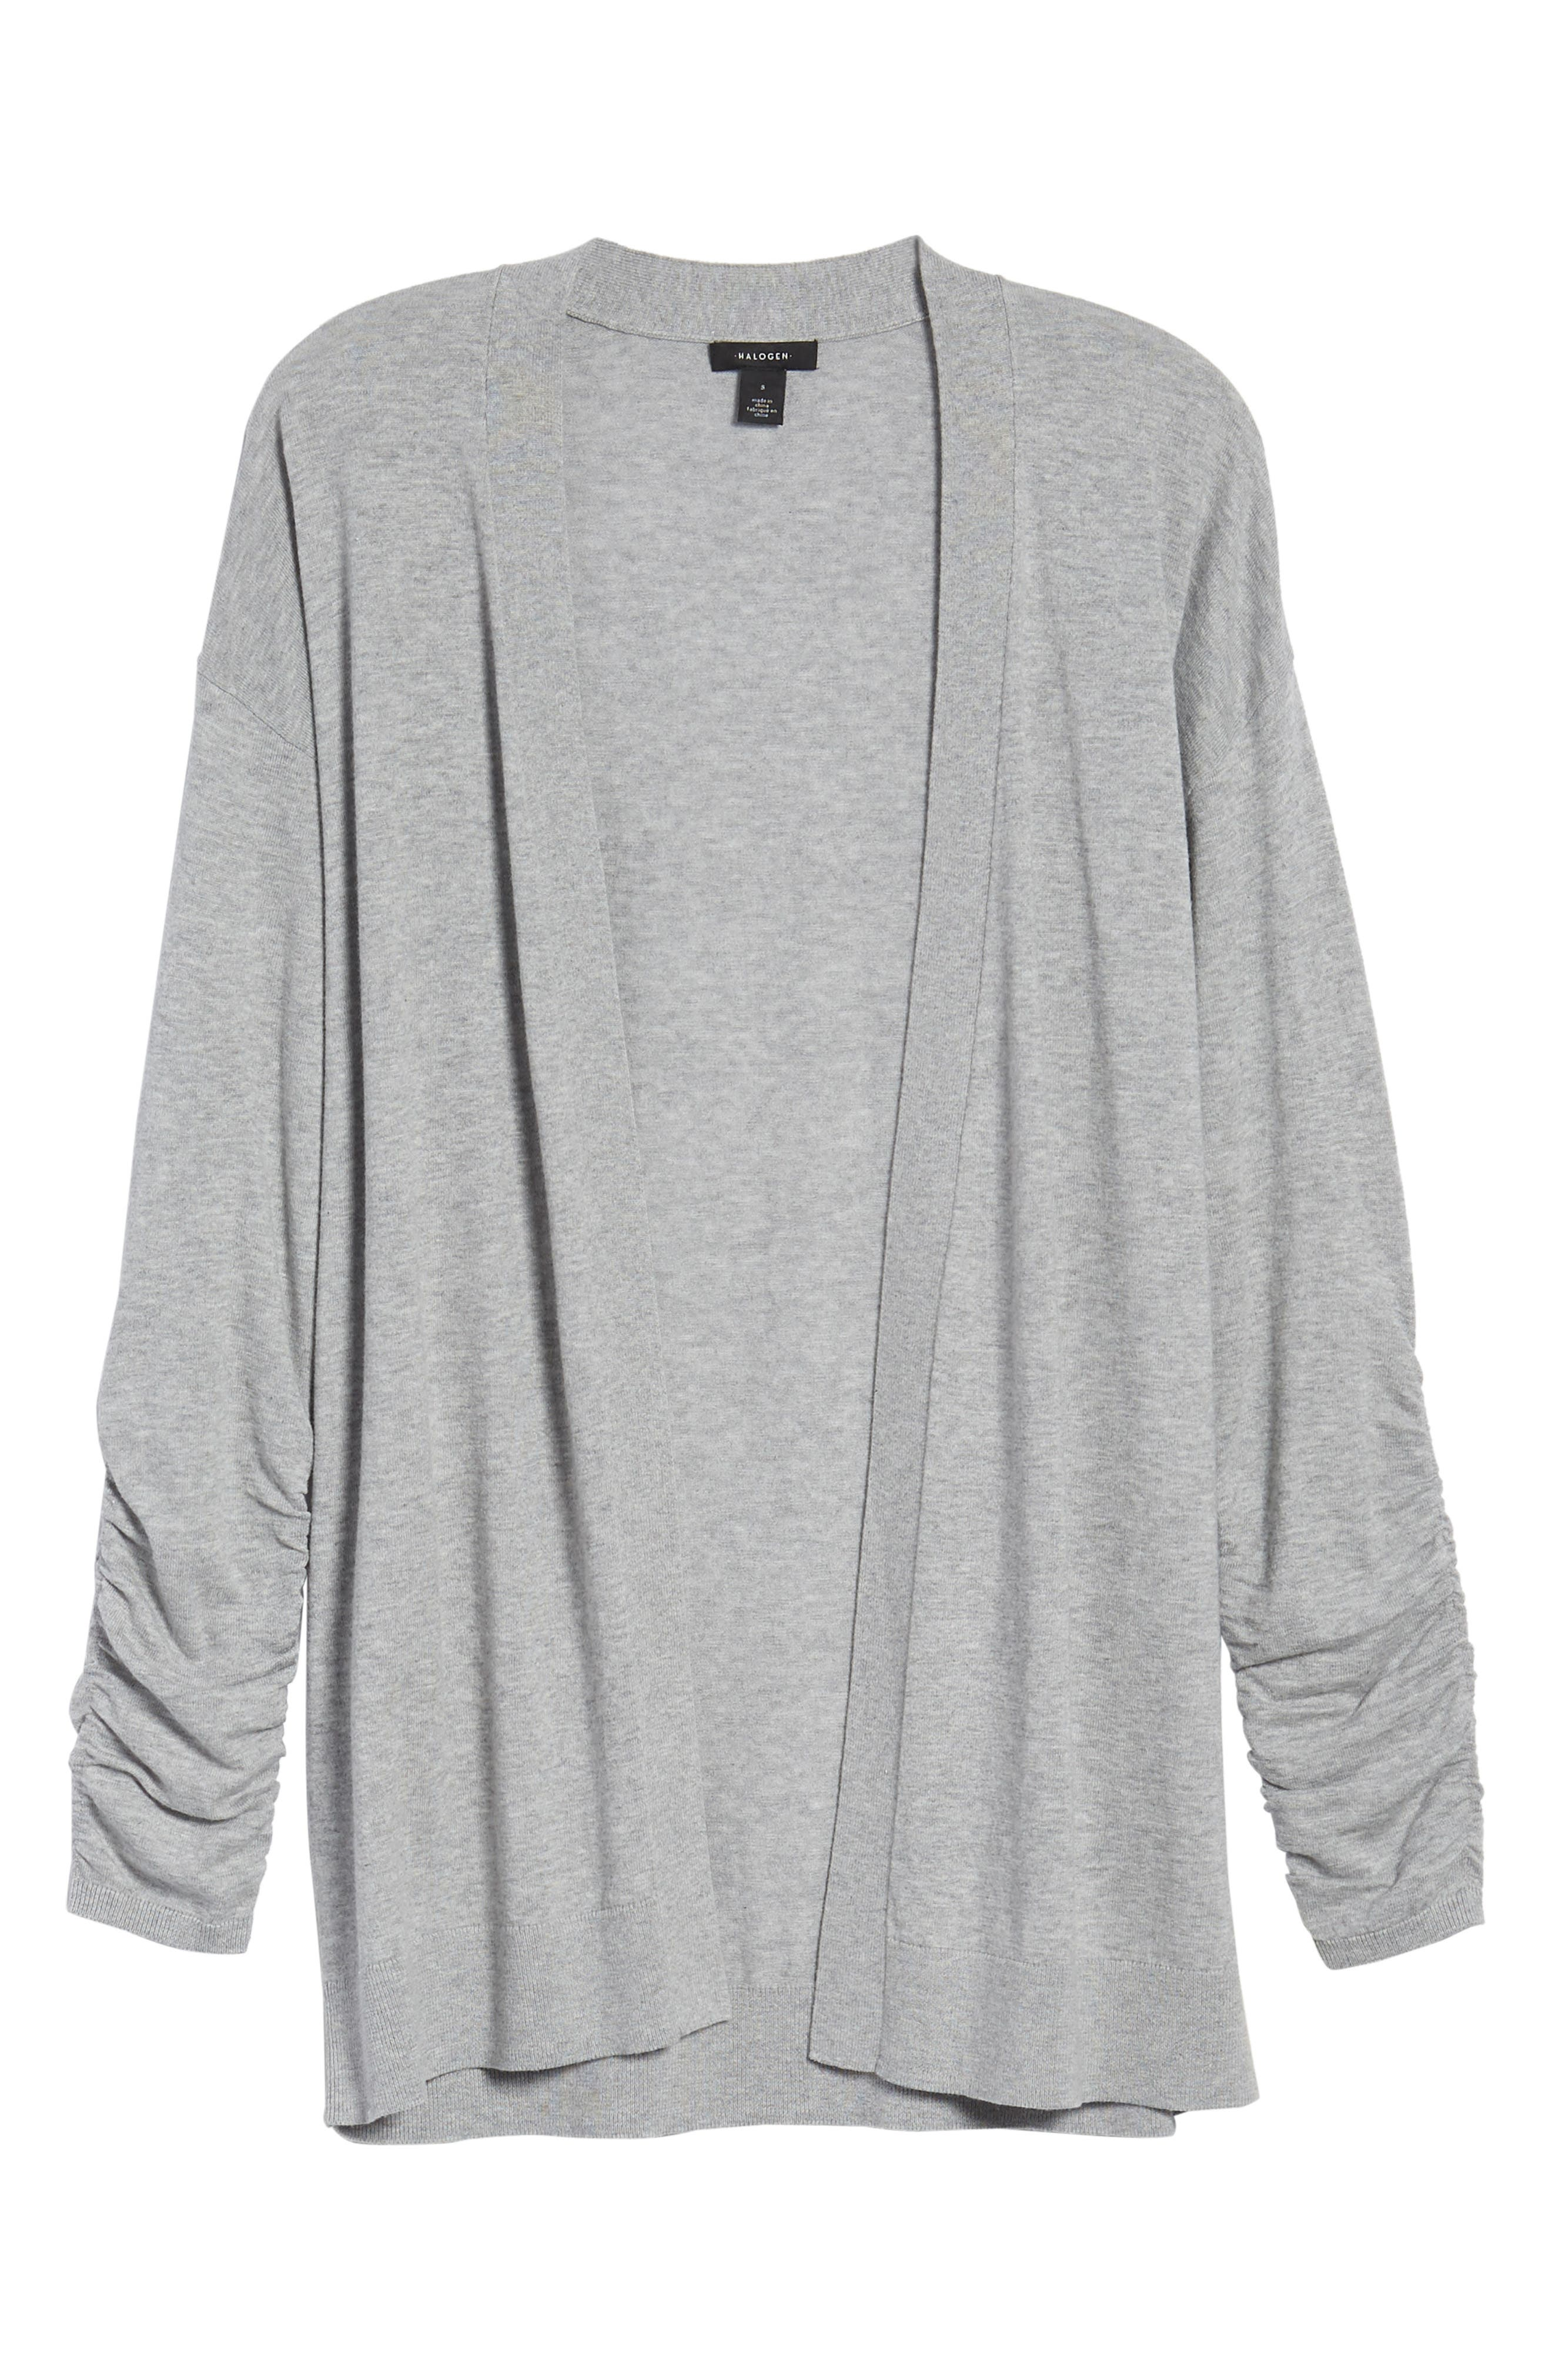 Ruched Sleeve Cardigan,                             Alternate thumbnail 7, color,                             Grey Heather